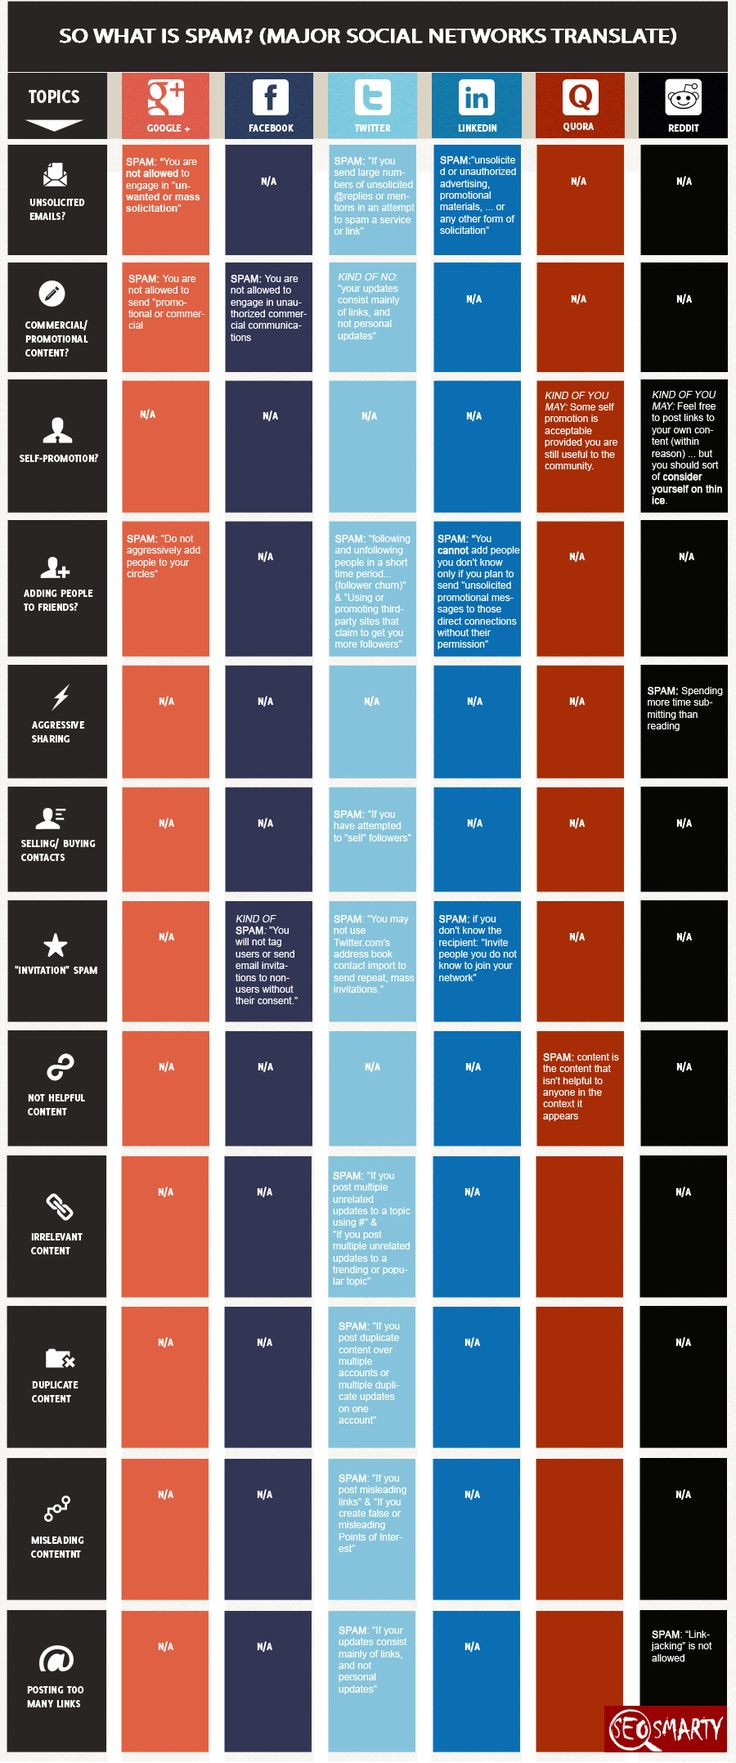 This infographic from Seo Smarty provides a handy one-page resource as to how each of the major social networks defines spam, what sort of spam you can expect and their position therein.